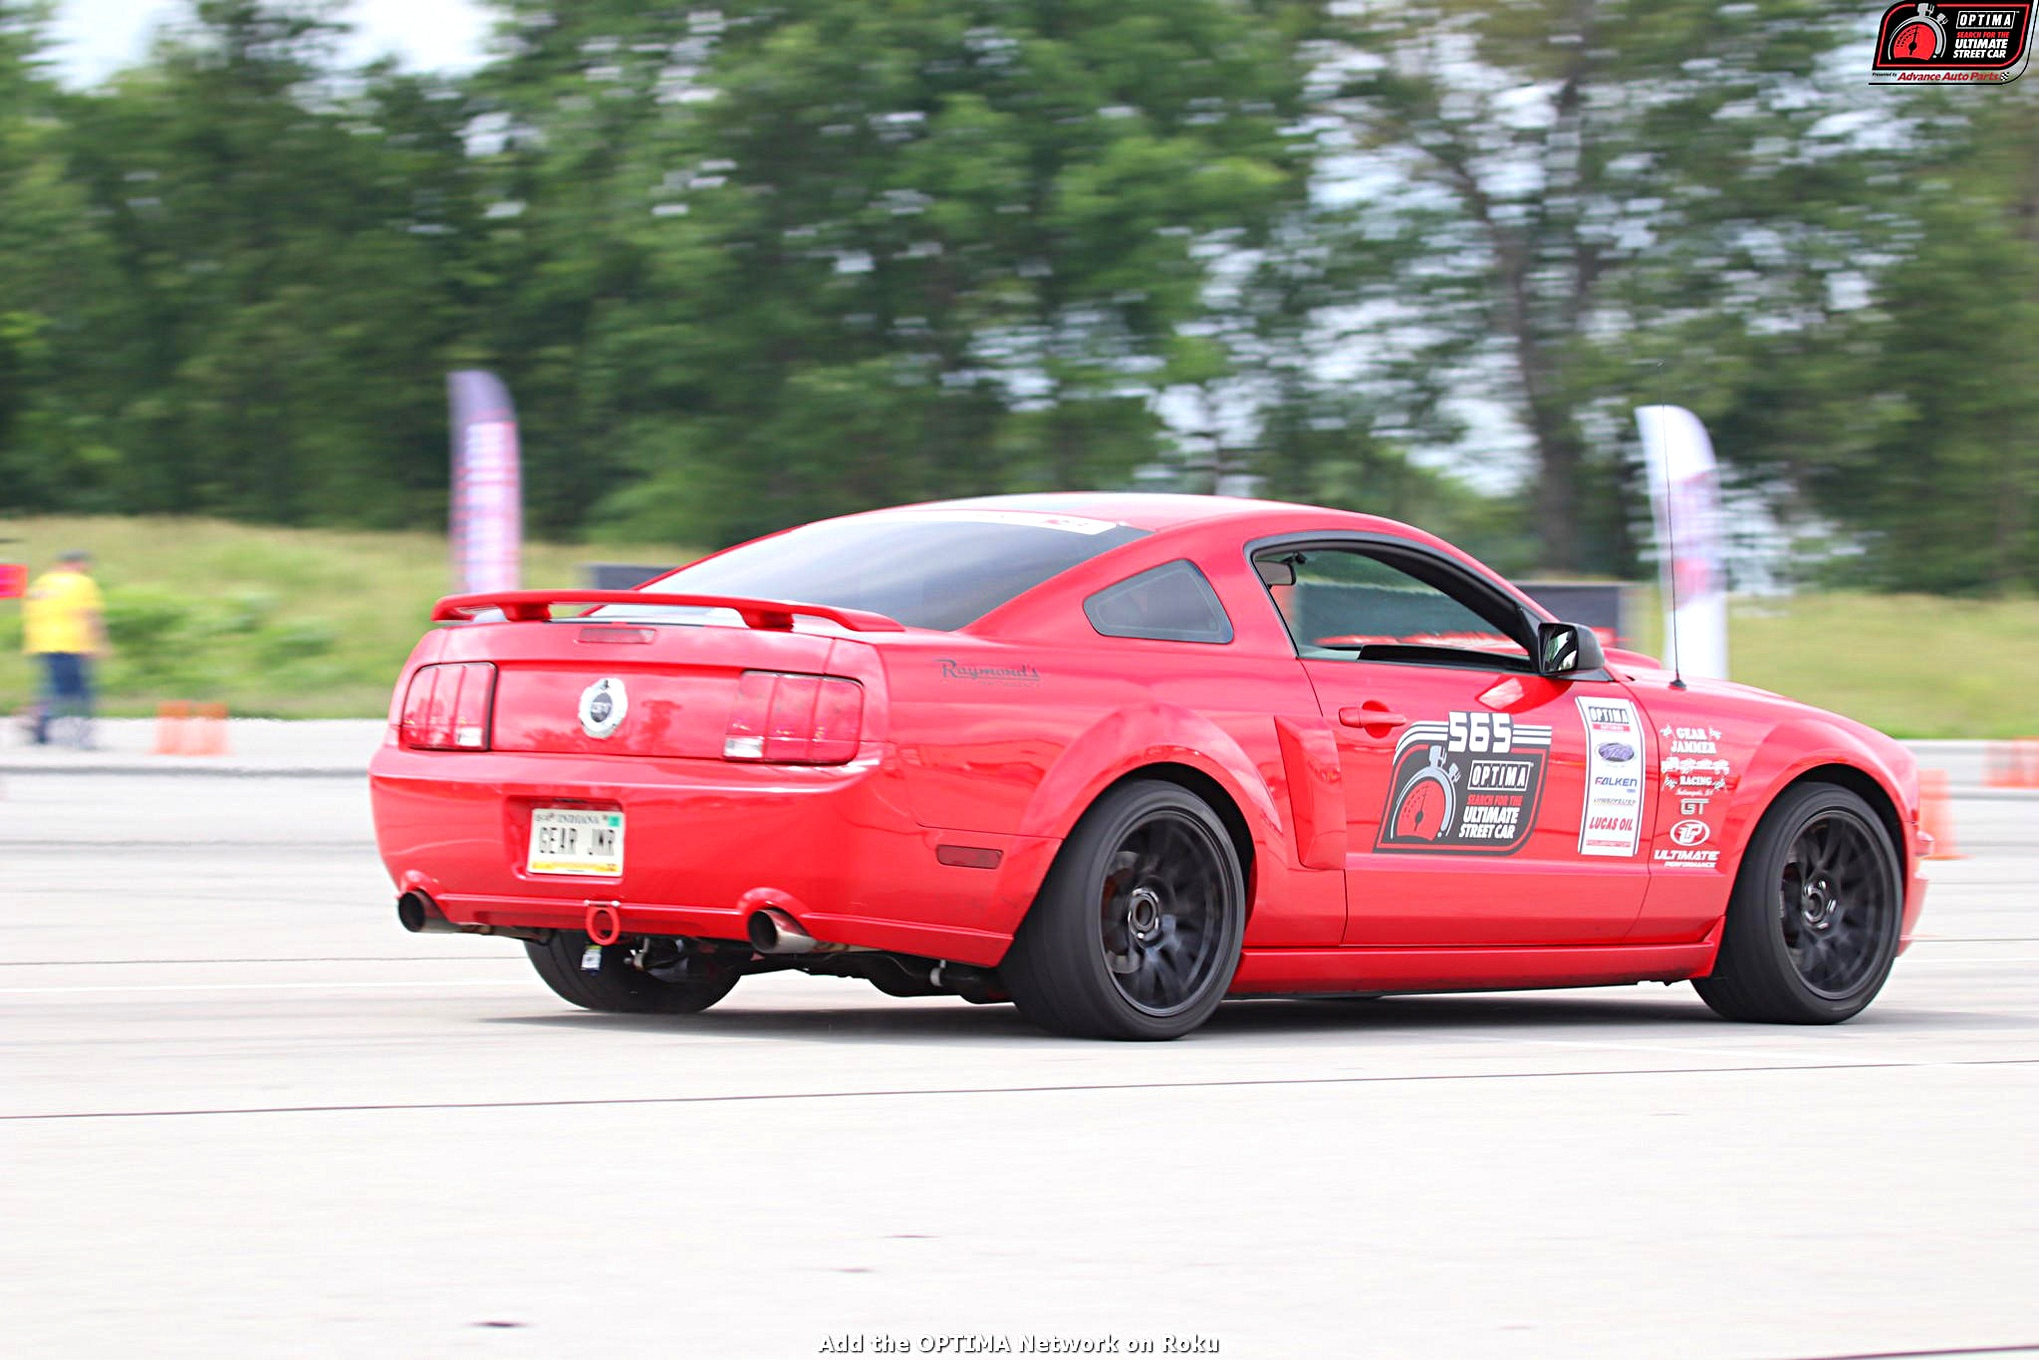 MMFF David Griffin 2006 Ford Mustang DriveOPTIMA NCM Motorsports Park 2018 153 006